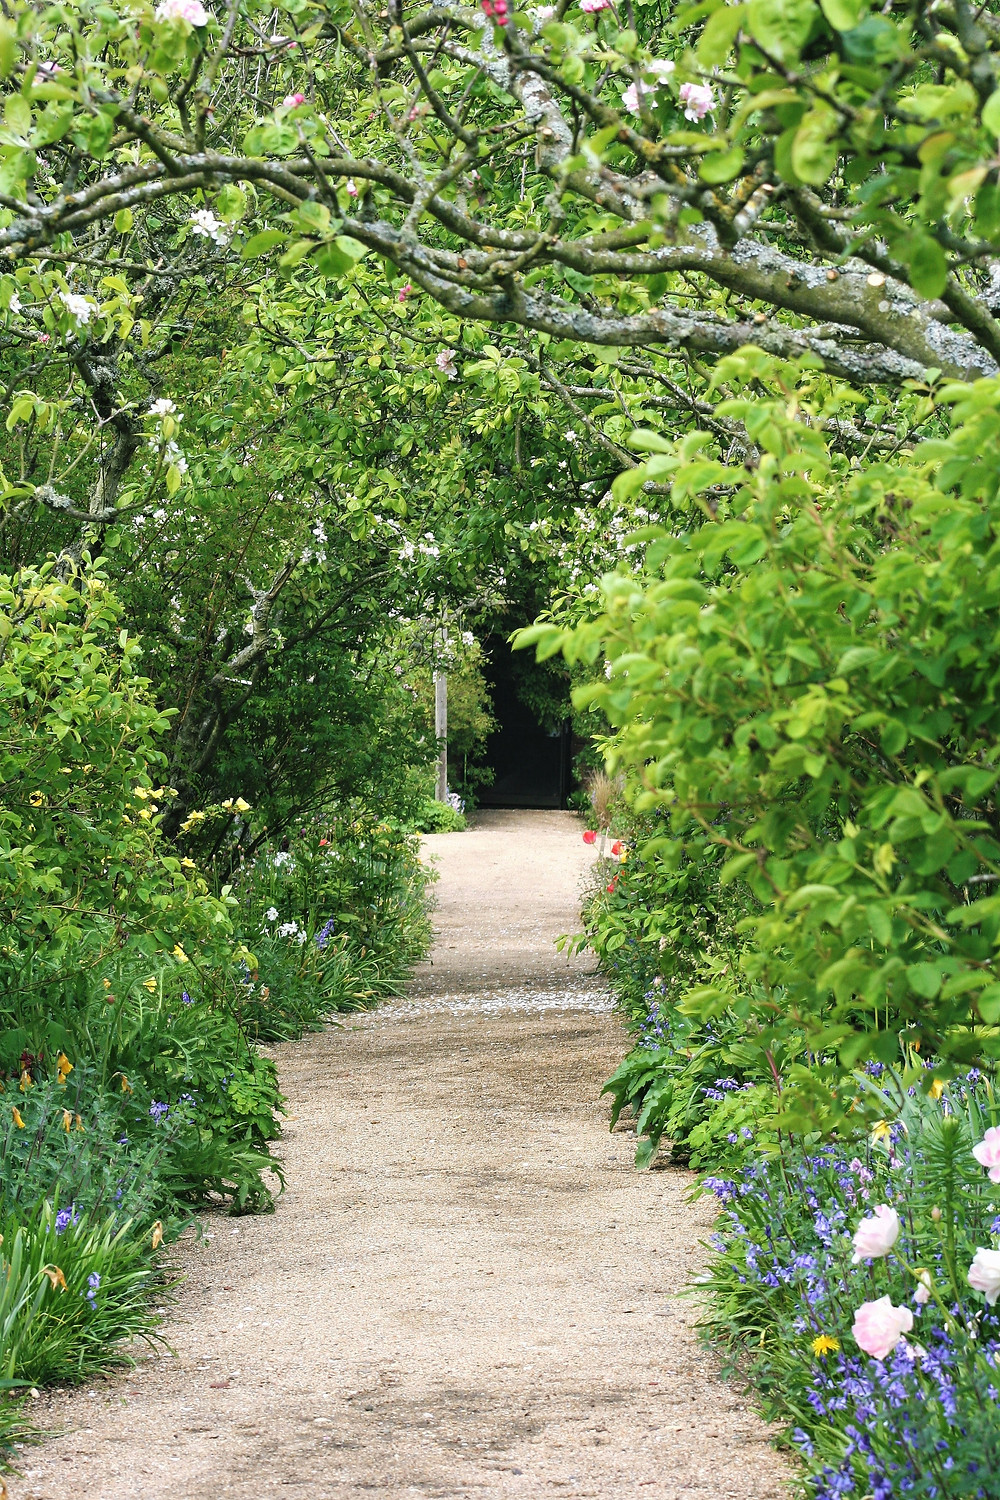 Lush green foliage and seasonal flowers on either side of a gravel path.